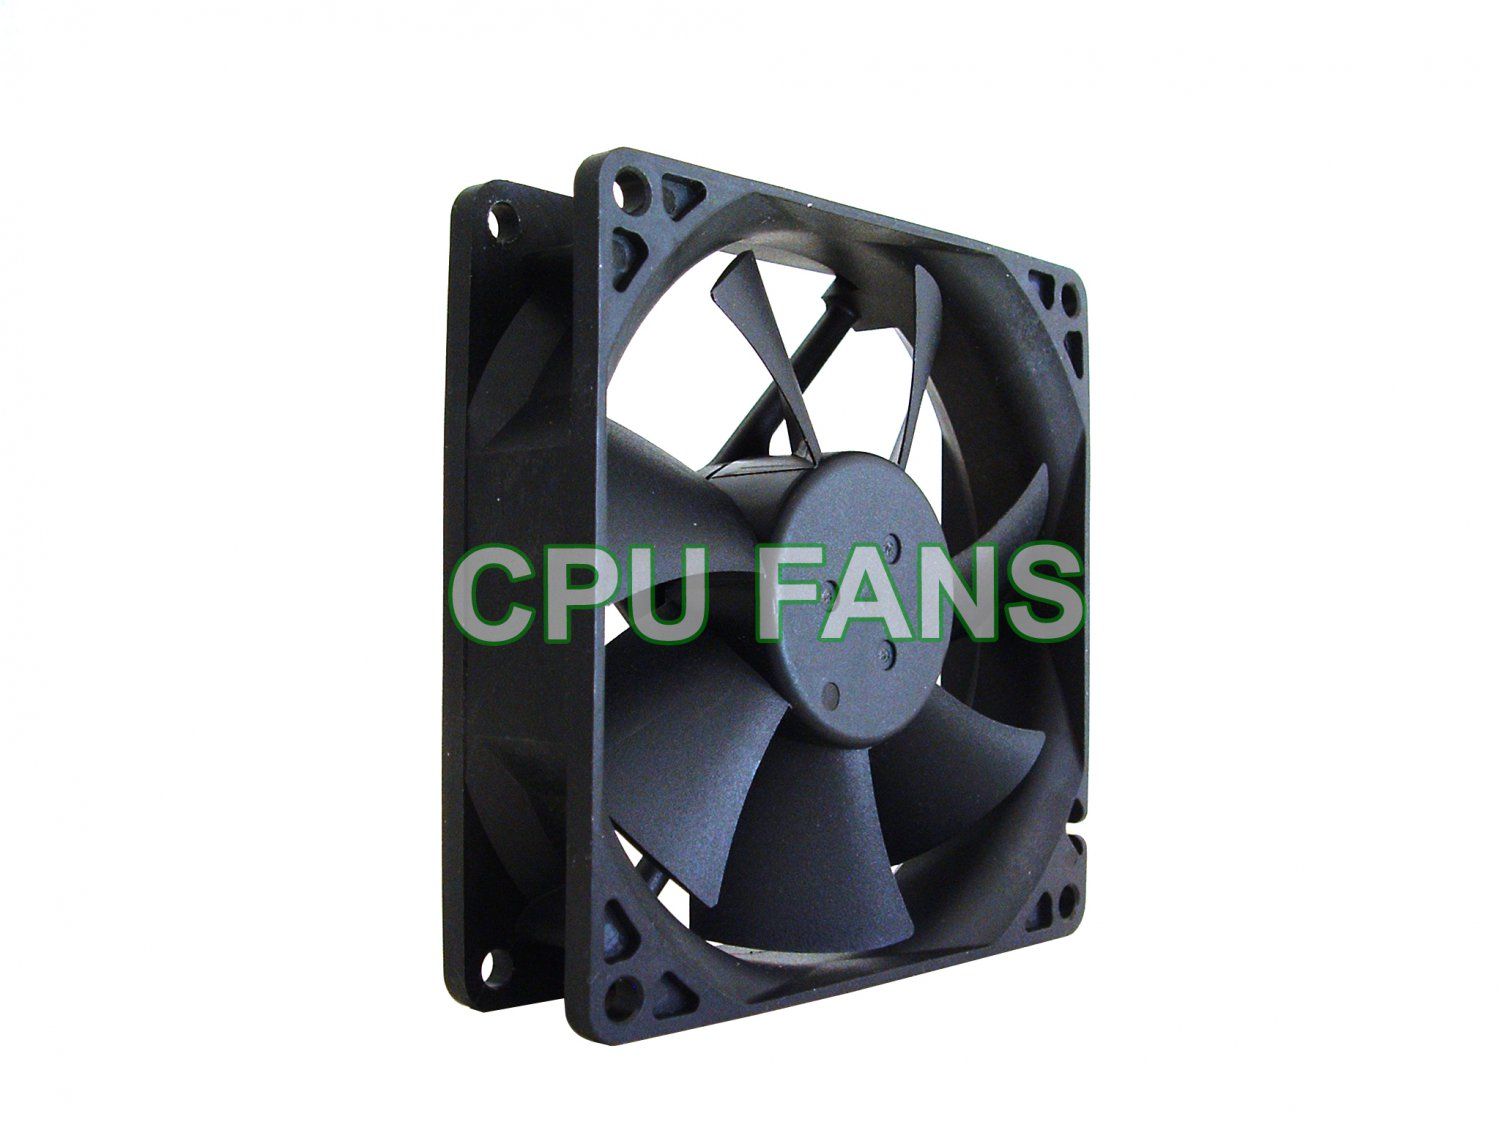 HP Pavilion A1612N Case Fan RC653AA RC653AAR System Cooling Fan